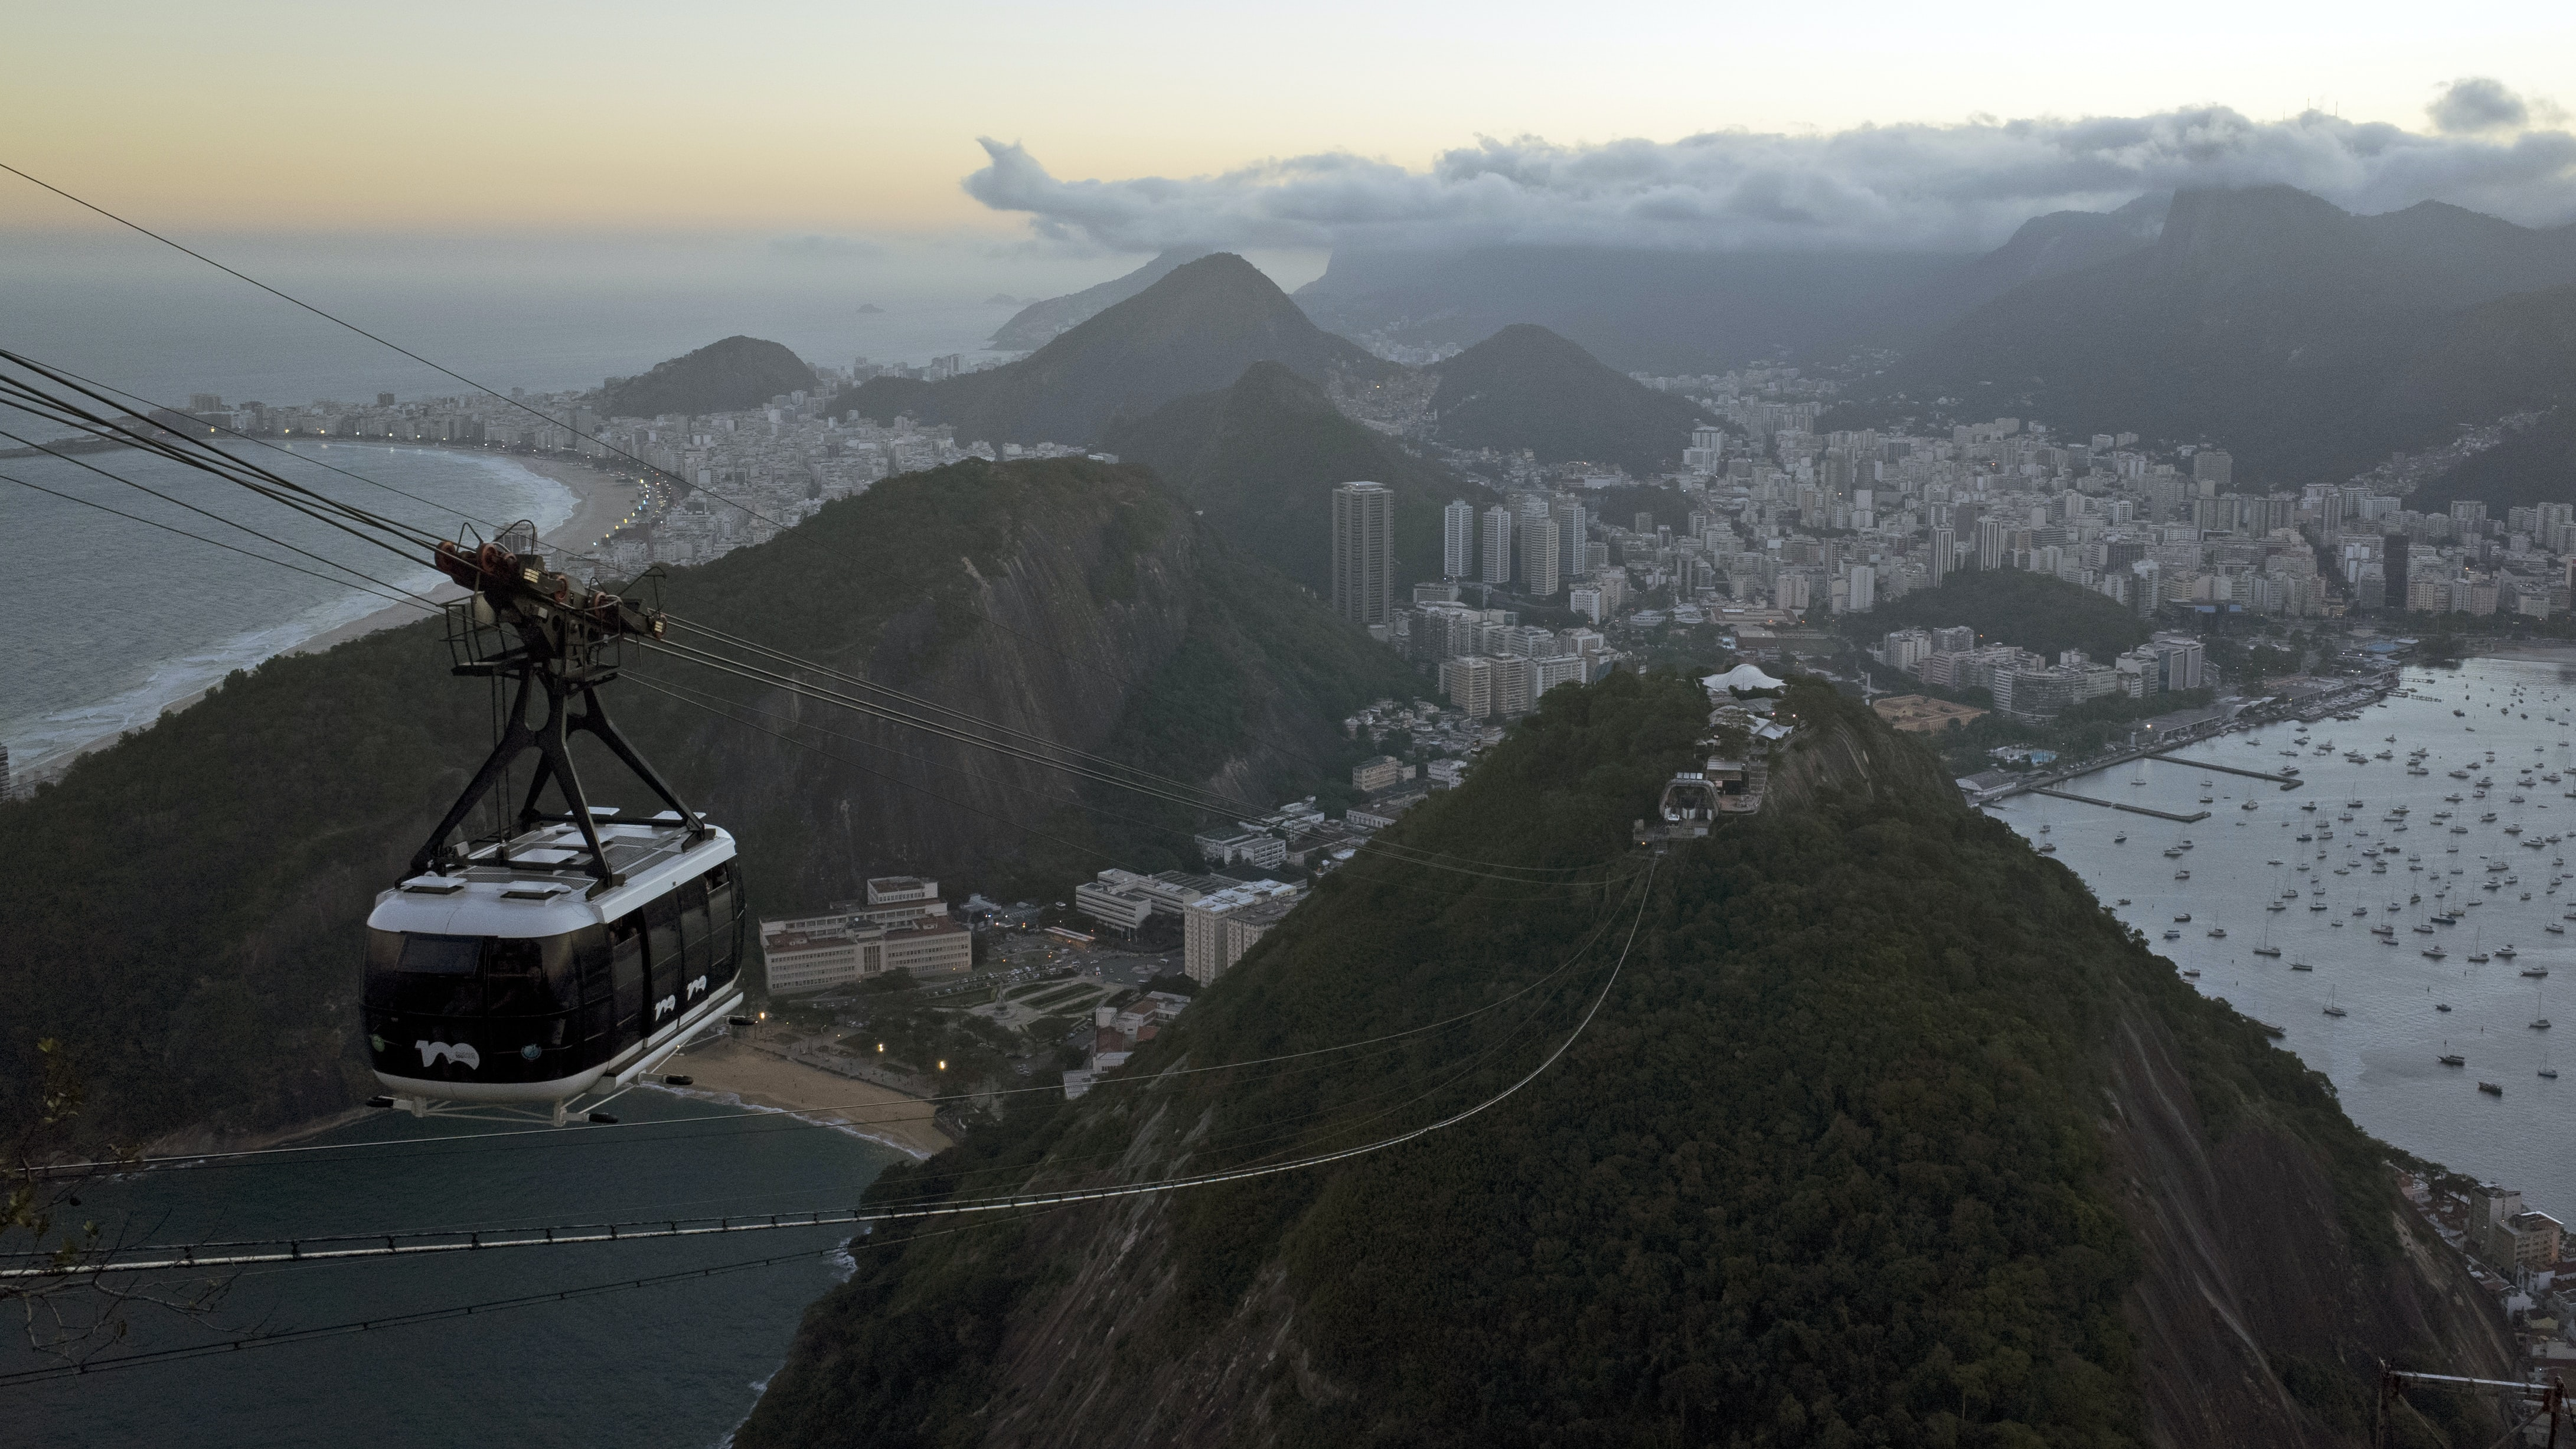 birds eye view photo of black and gray cable car